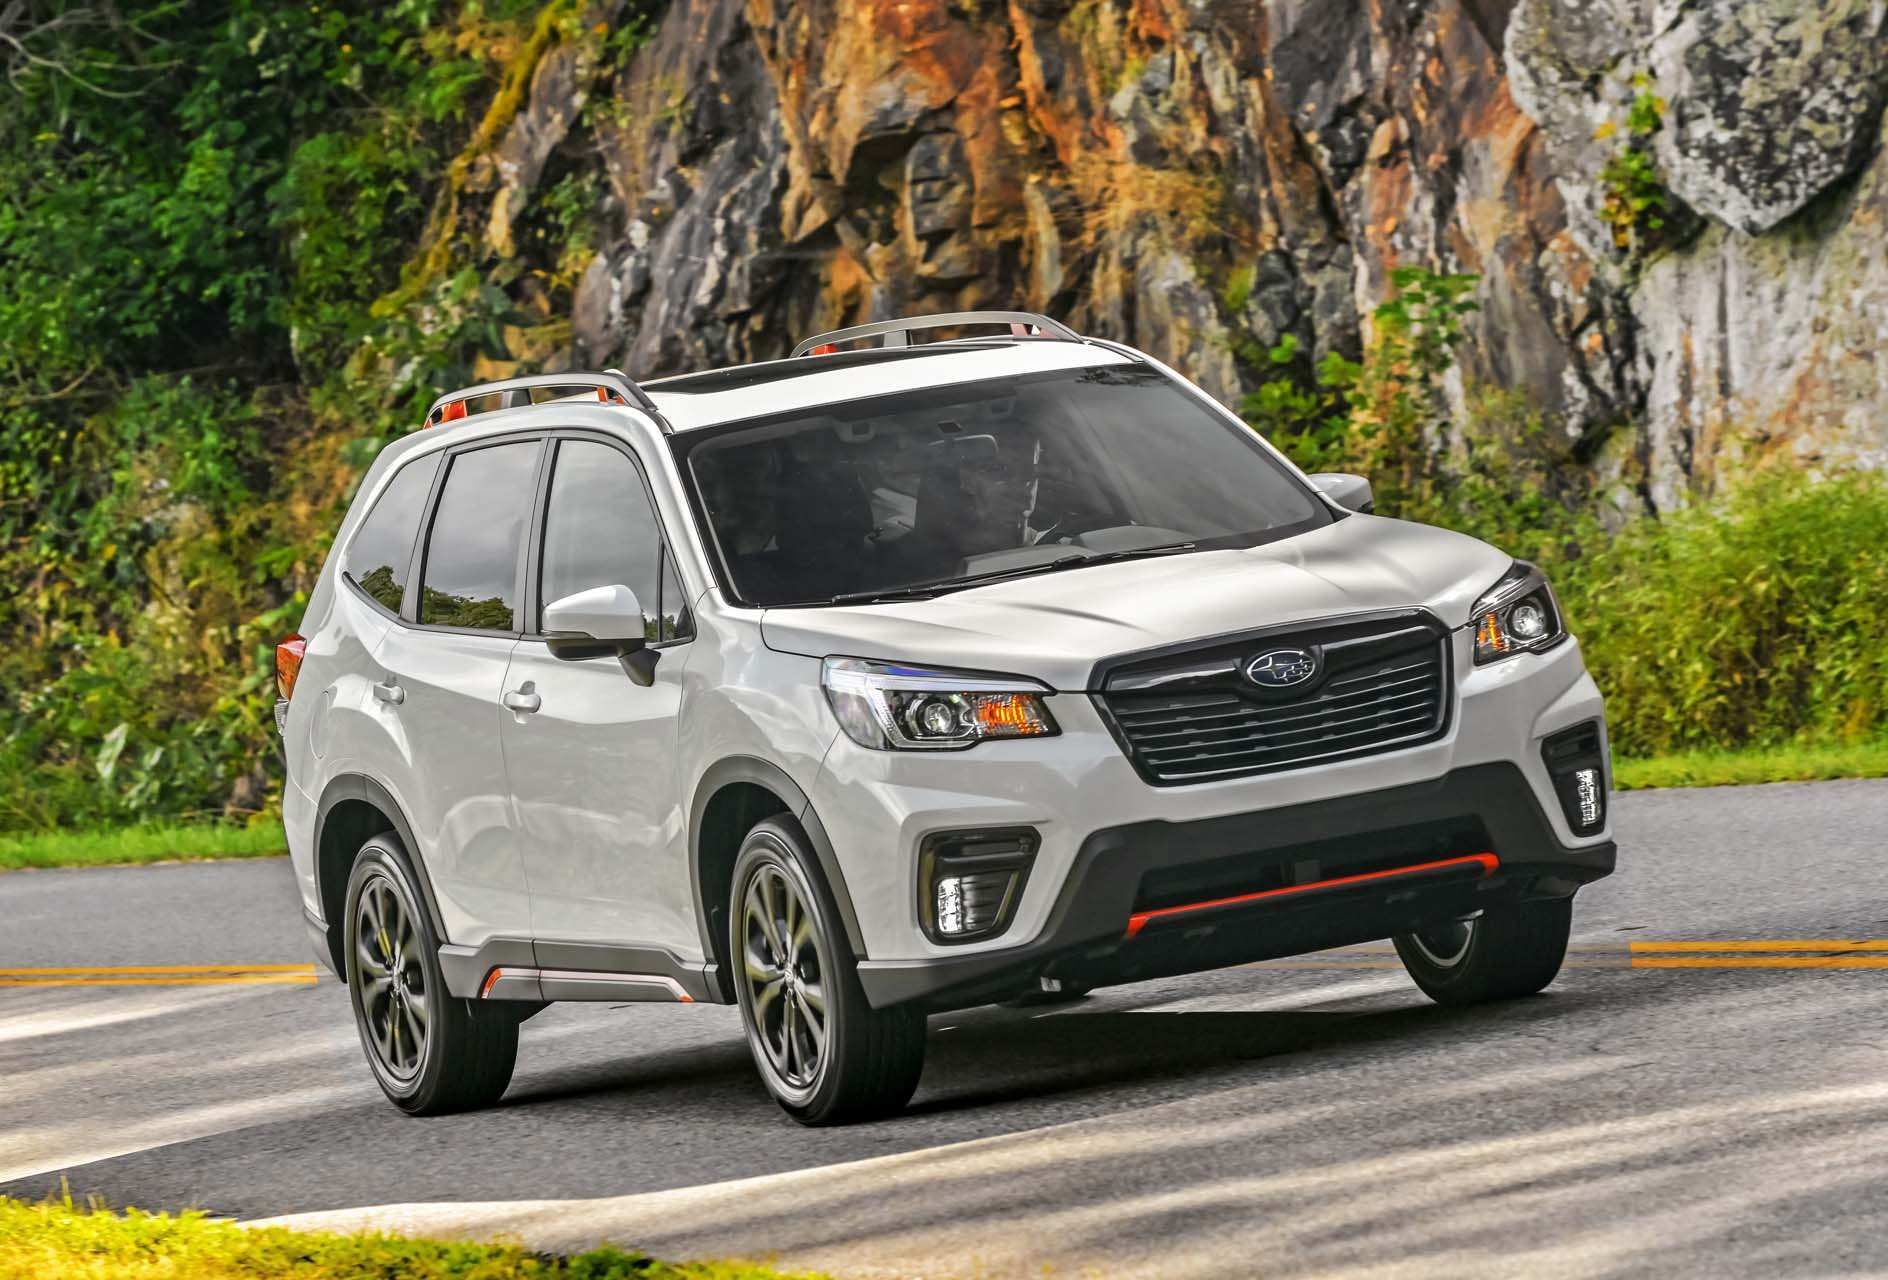 27 A Subaru Forester 2019 Ground Clearance Pricing